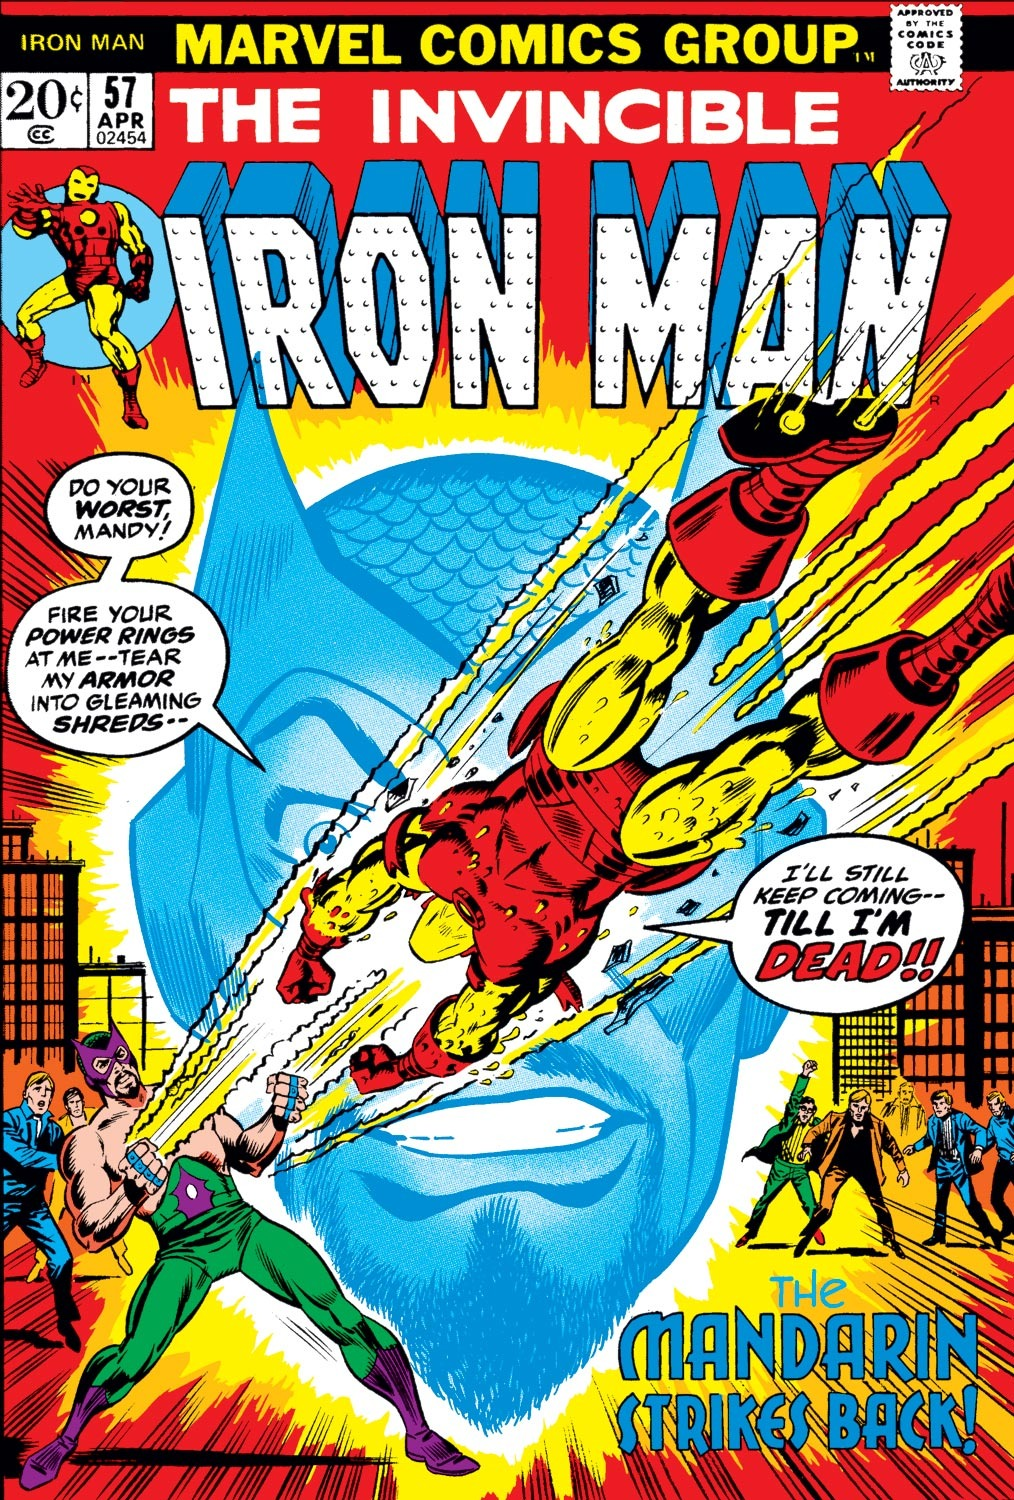 Iron man vol 1 57 marvel database fandom powered by wikia - Iron man 1 images ...